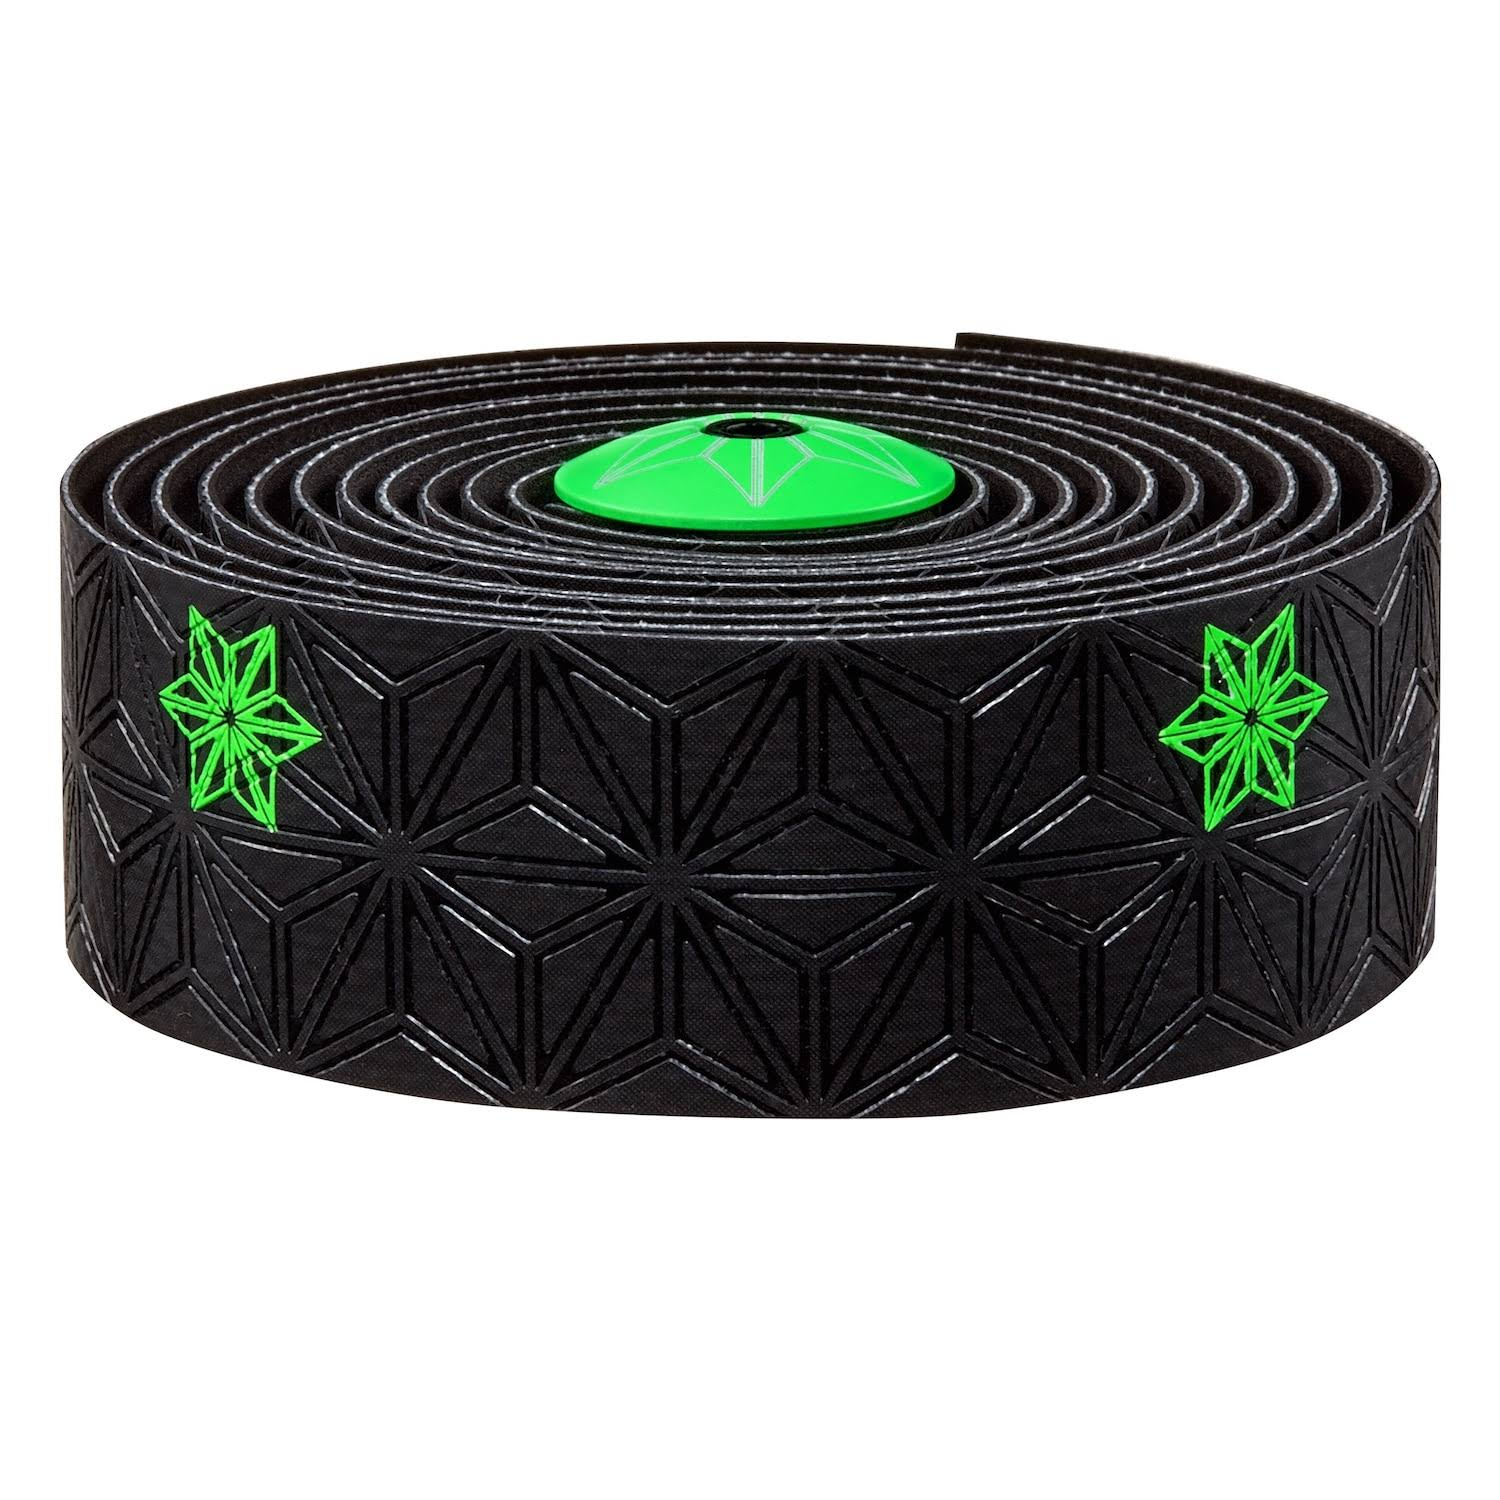 Supacaz Super Sticky Kush Print Bar Tape - Black/Neon Green, 2160mm